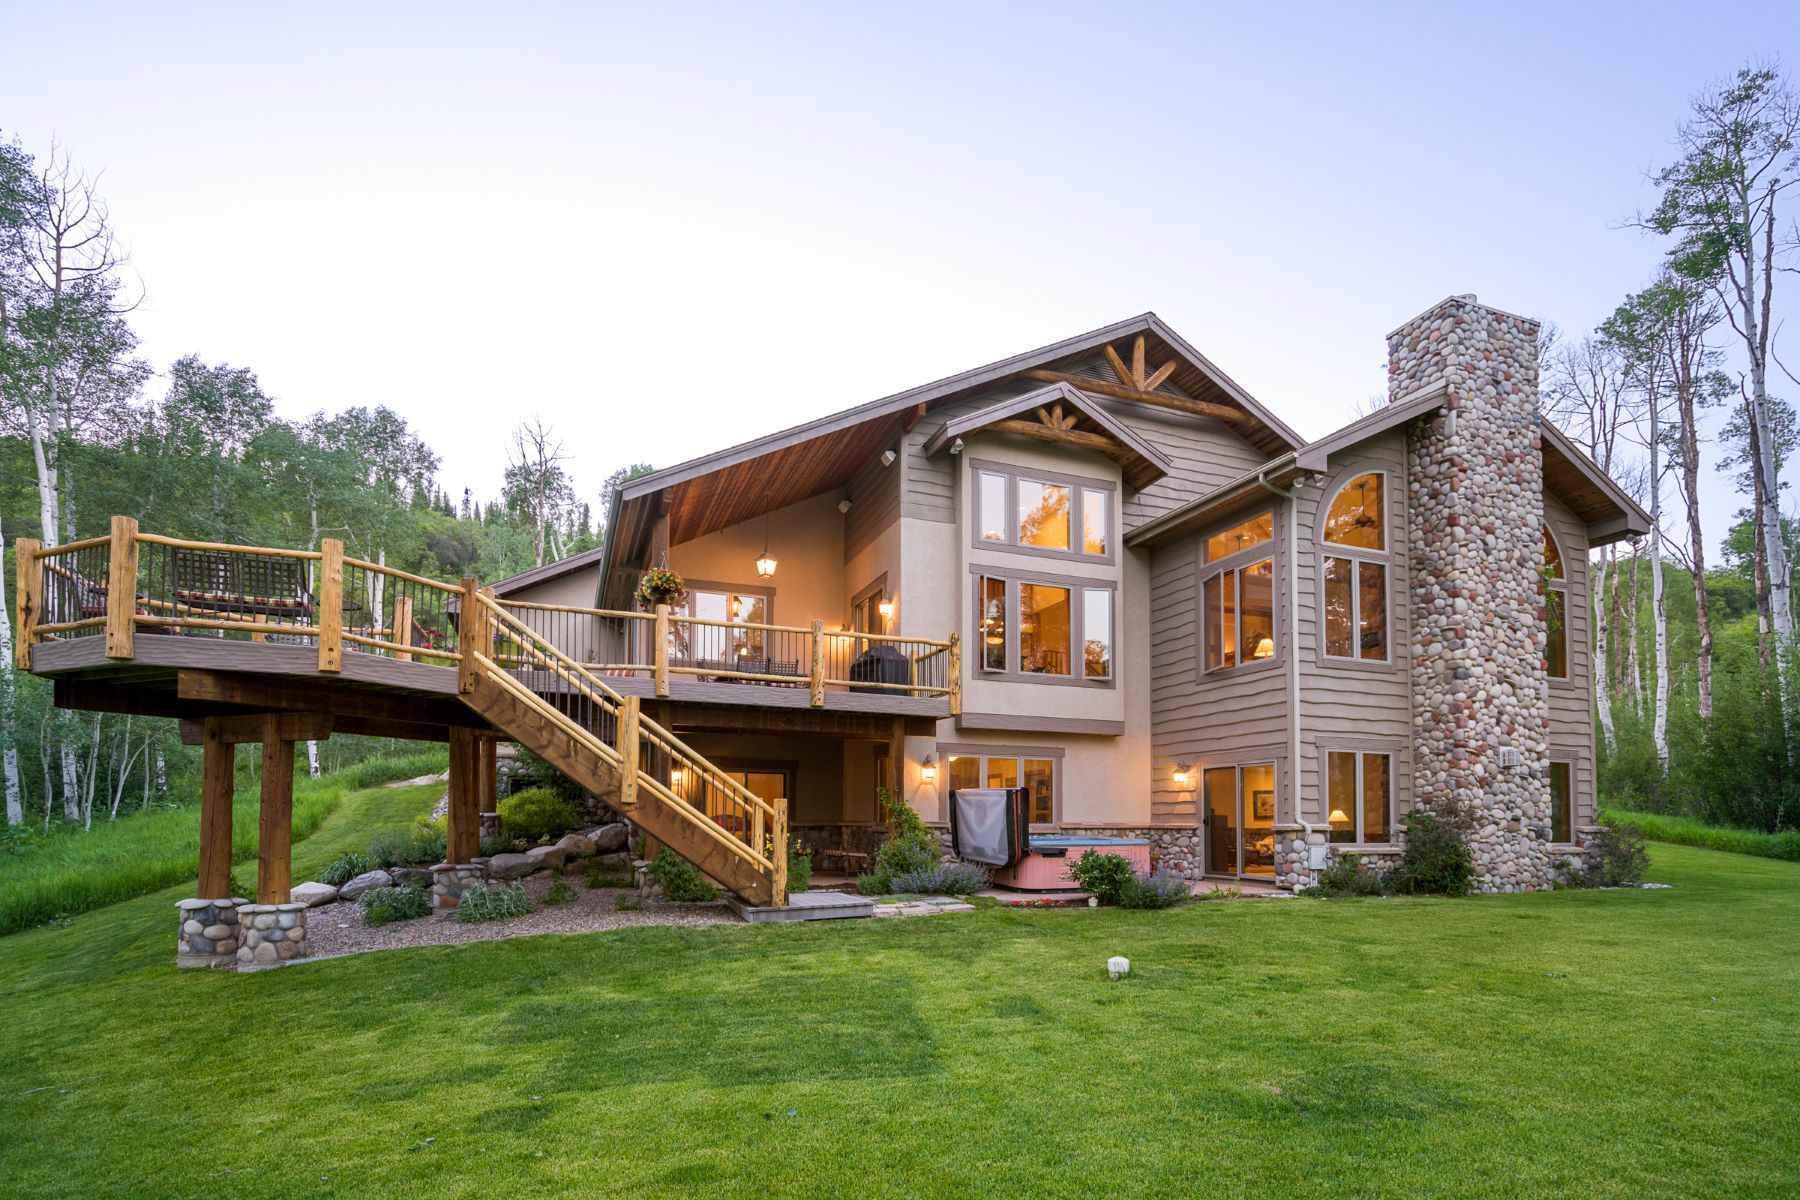 Additional photo for property listing at Luxury Mountain Home in Aspen Trees 31570 Aspen Ridge Road Steamboat Springs, Colorado 80487 Estados Unidos